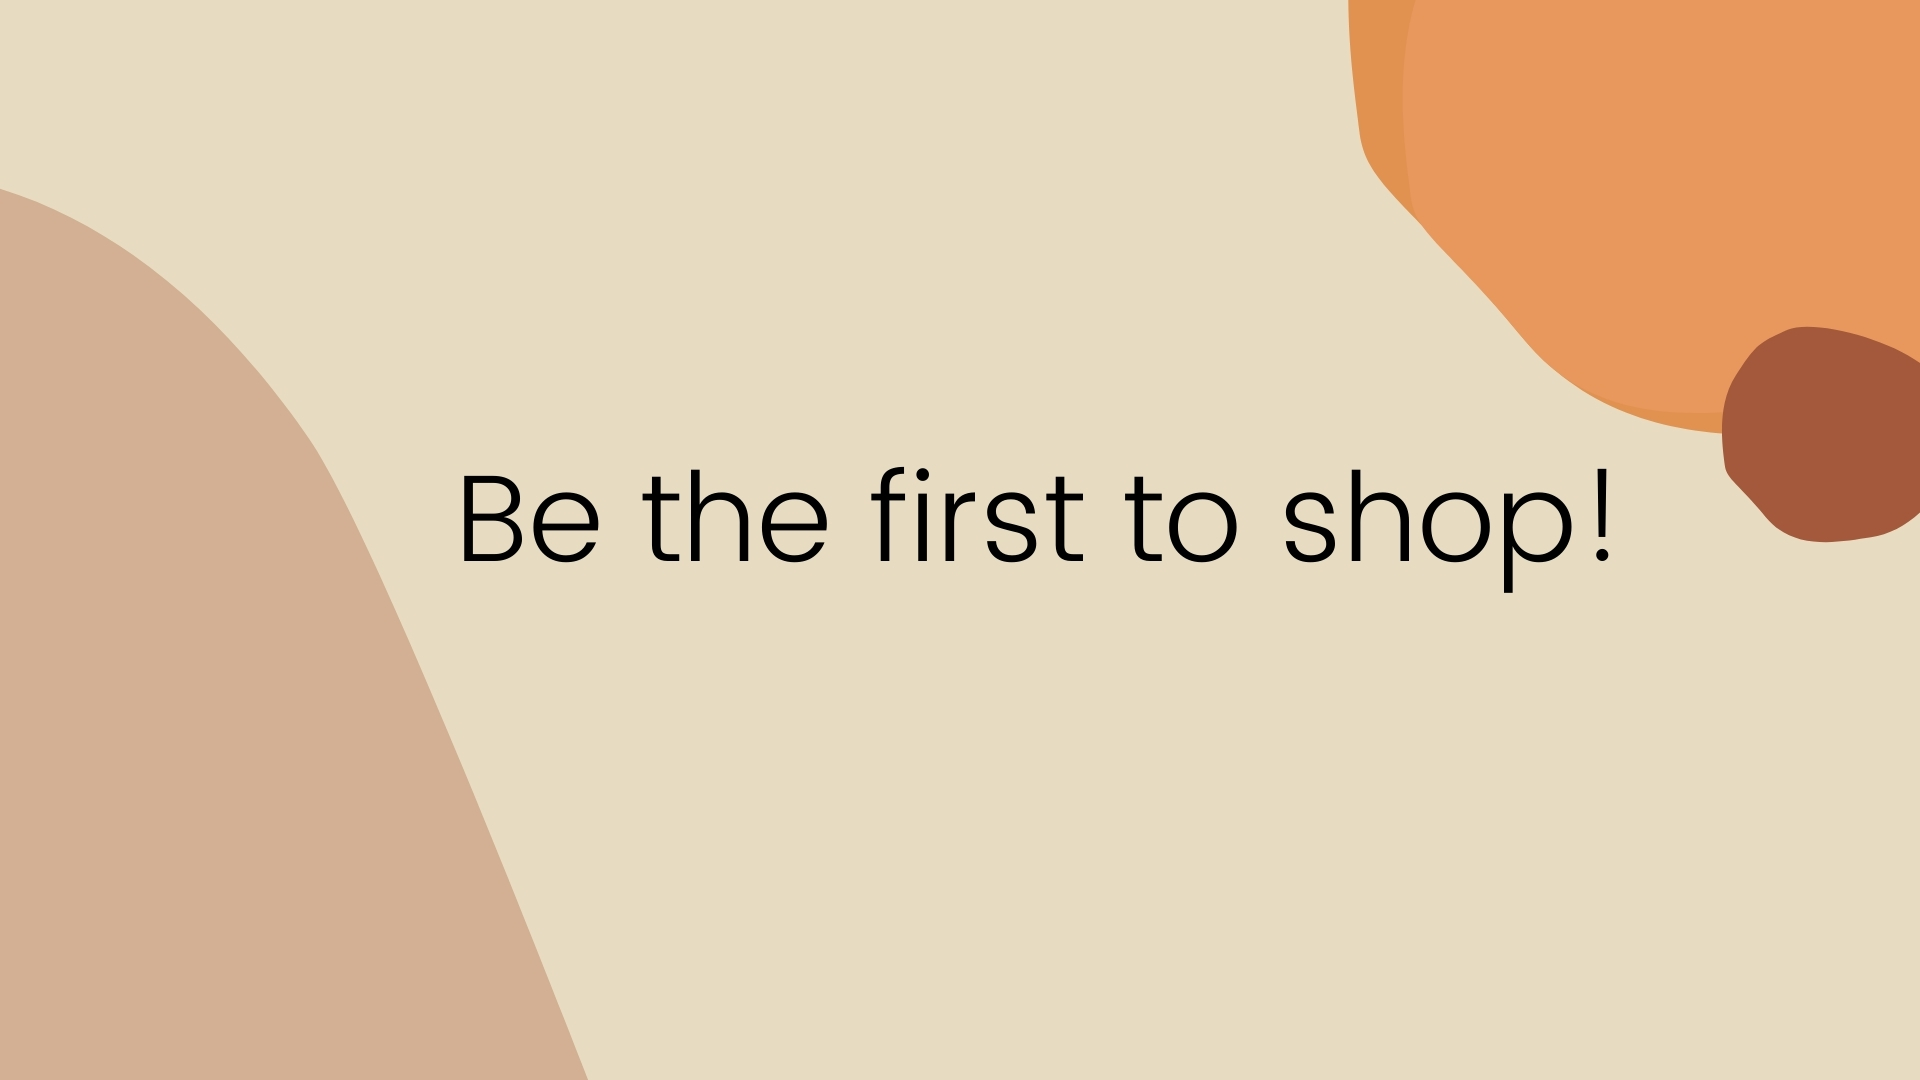 Be the first to shop